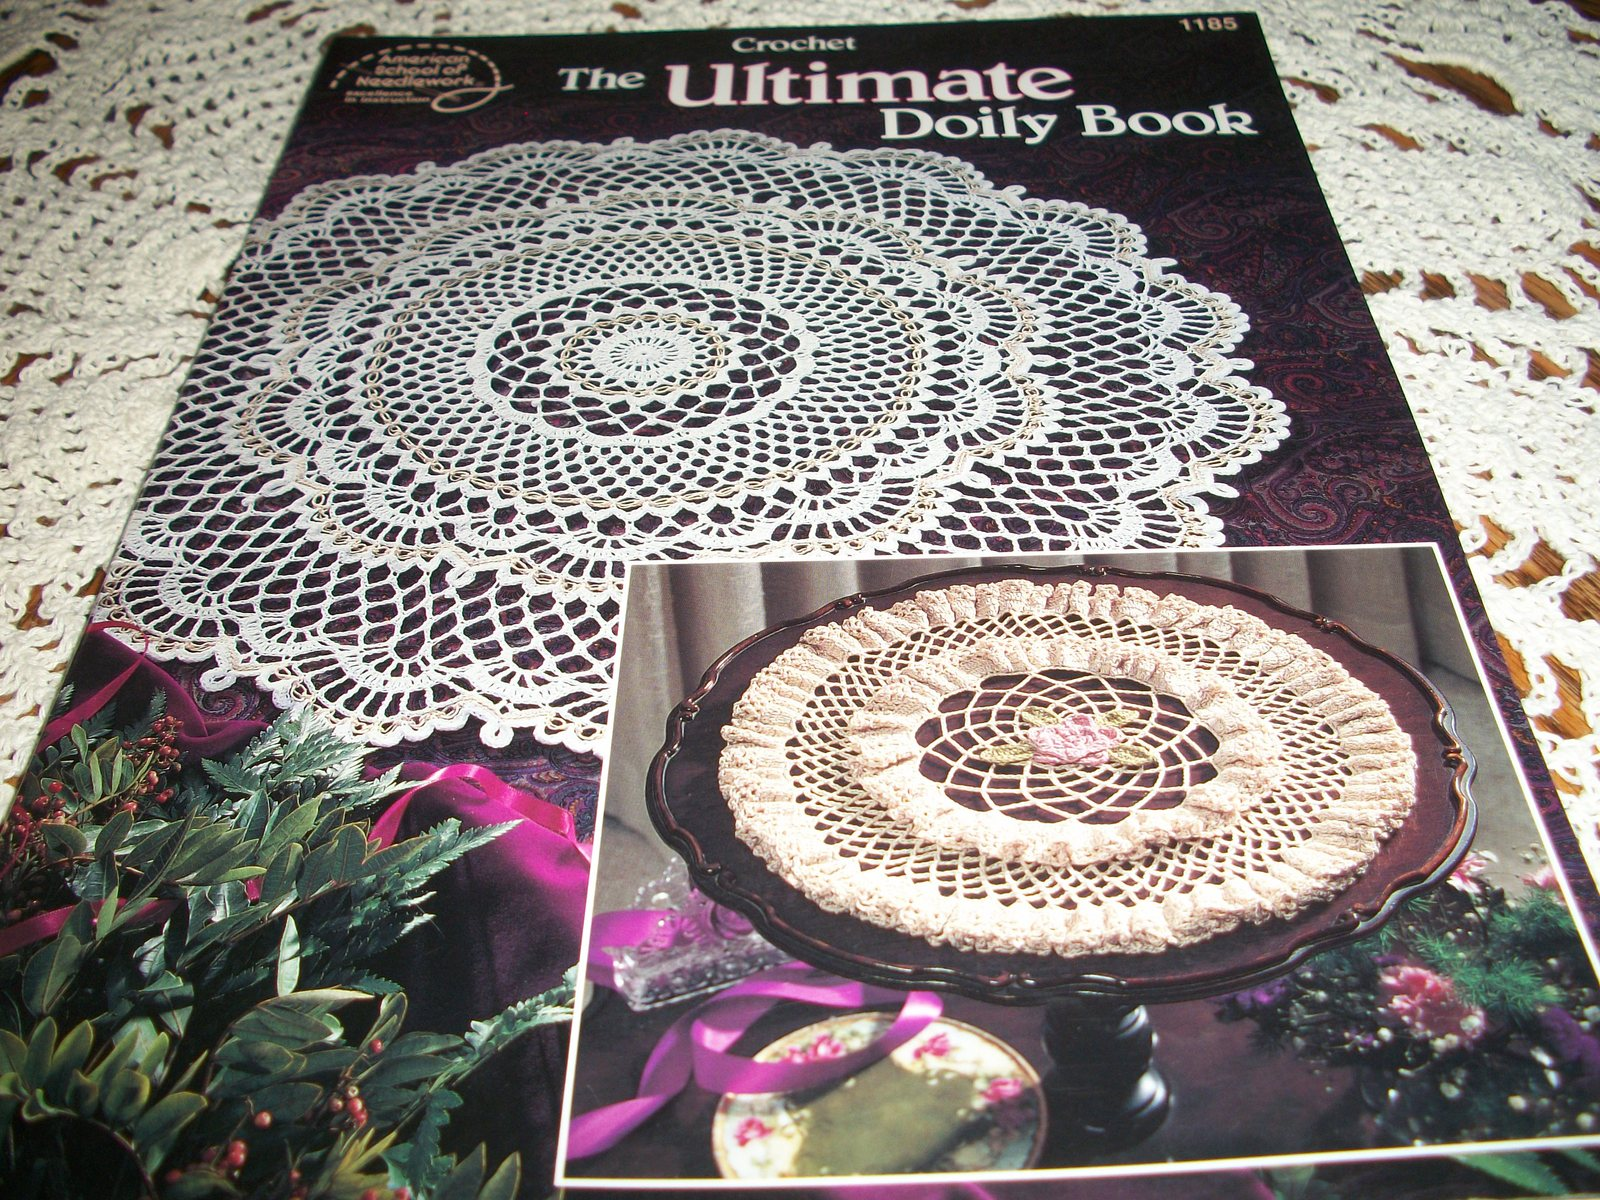 Primary image for Crochet: The Ultimate Doily Book 1185